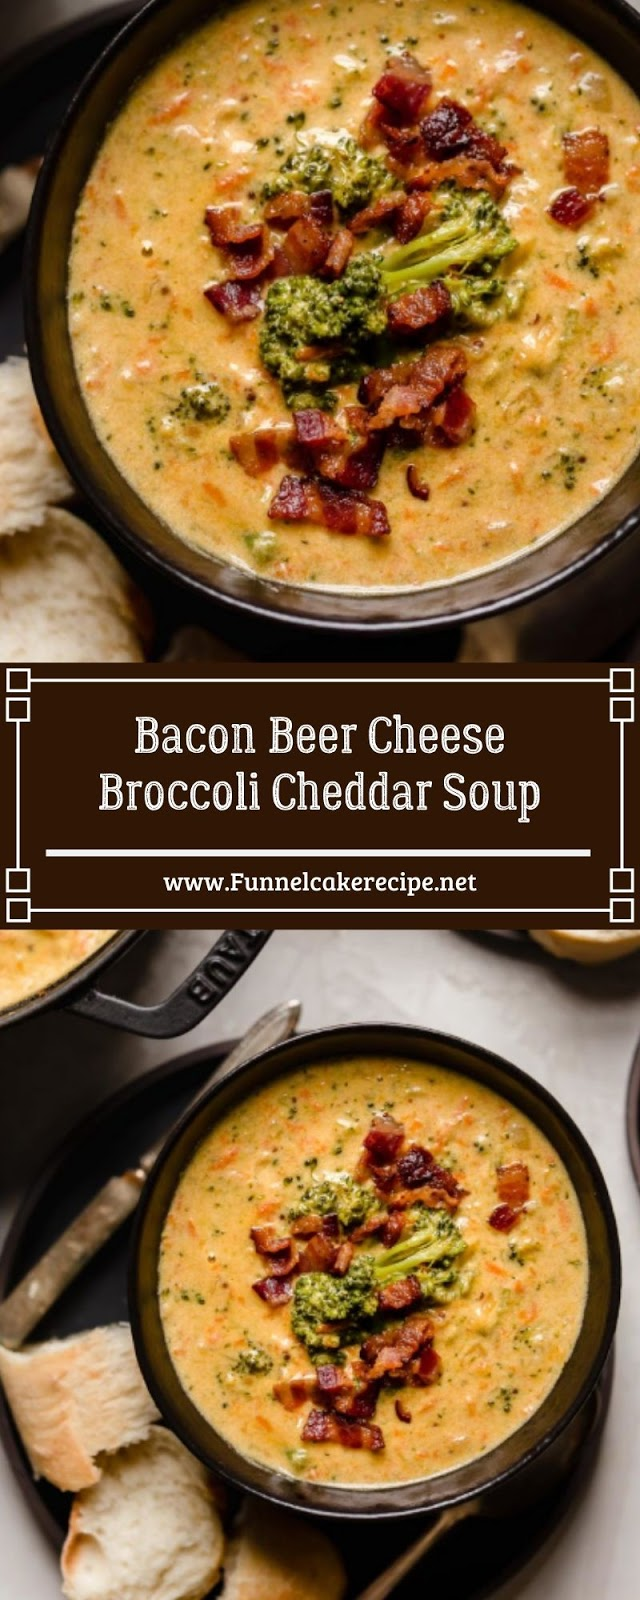 Bacon Beer Cheese Broccoli Cheddar Soup